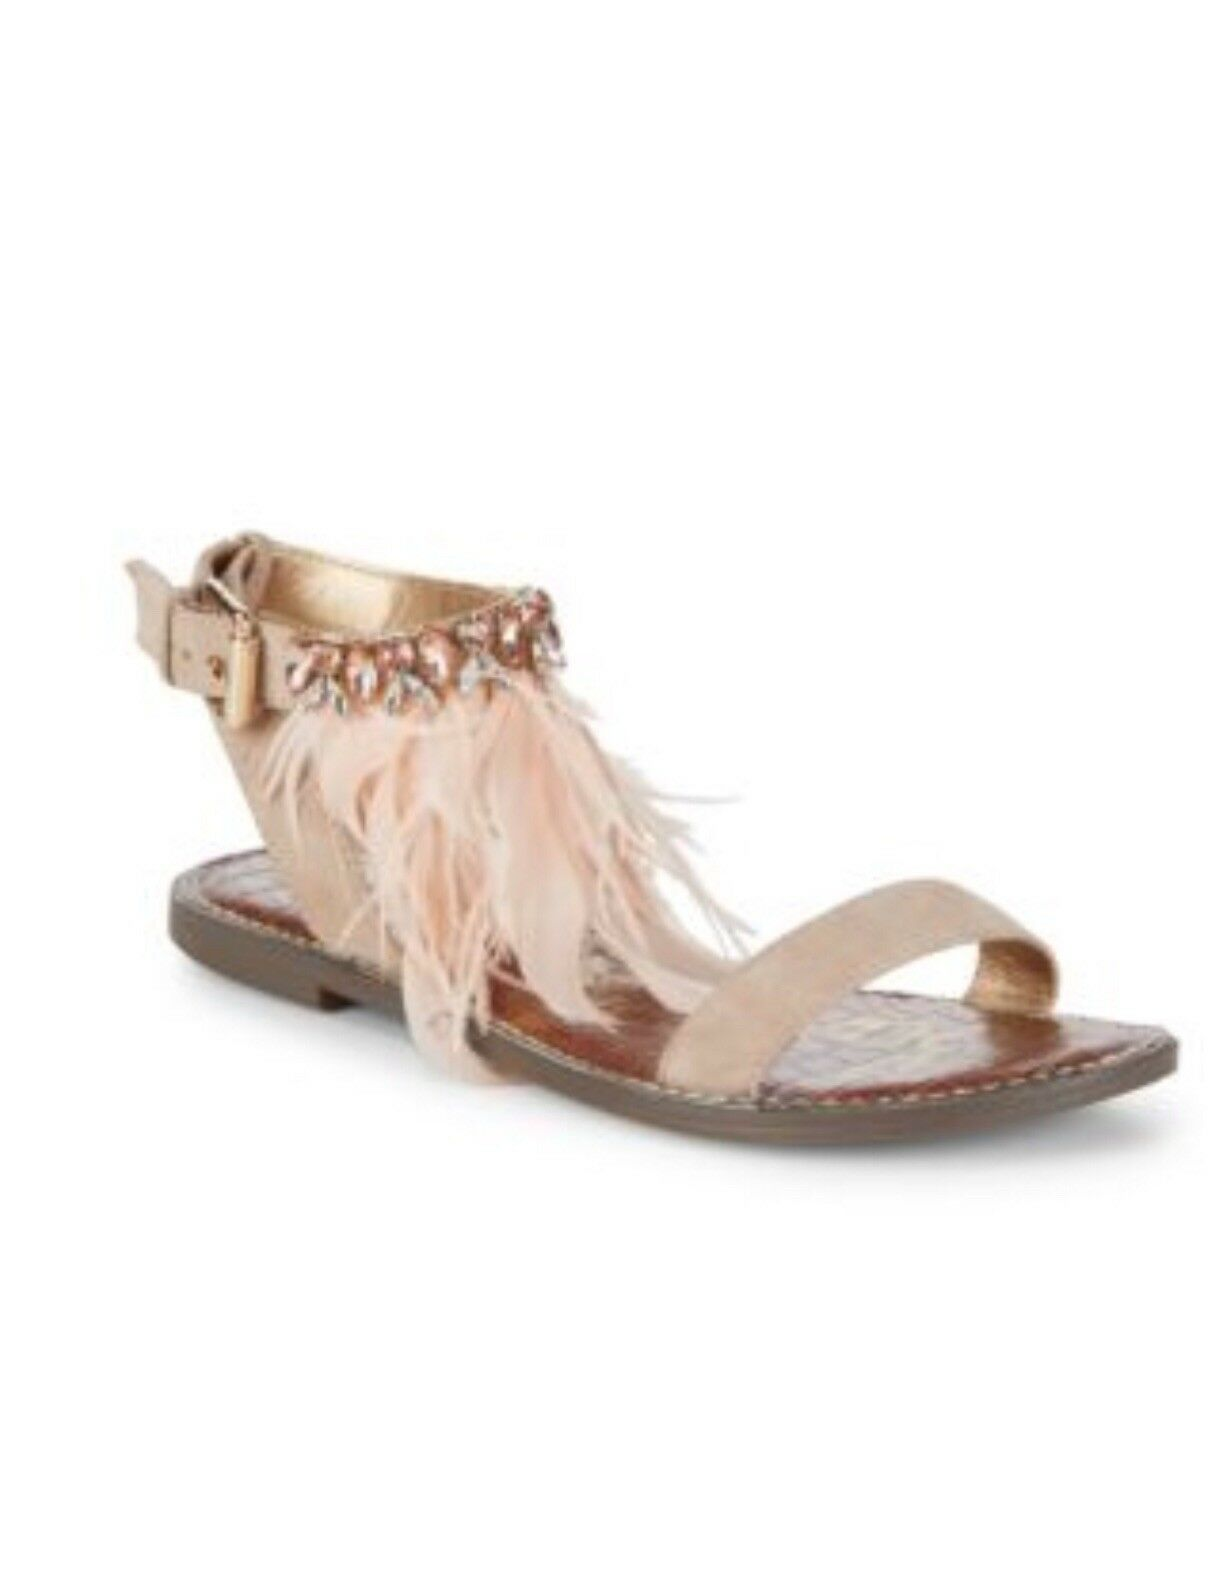 Sam Sandales Edelman Genevia Sandales Sam Größe 7.5 Blush Pink with feathers and embellishment 83616e